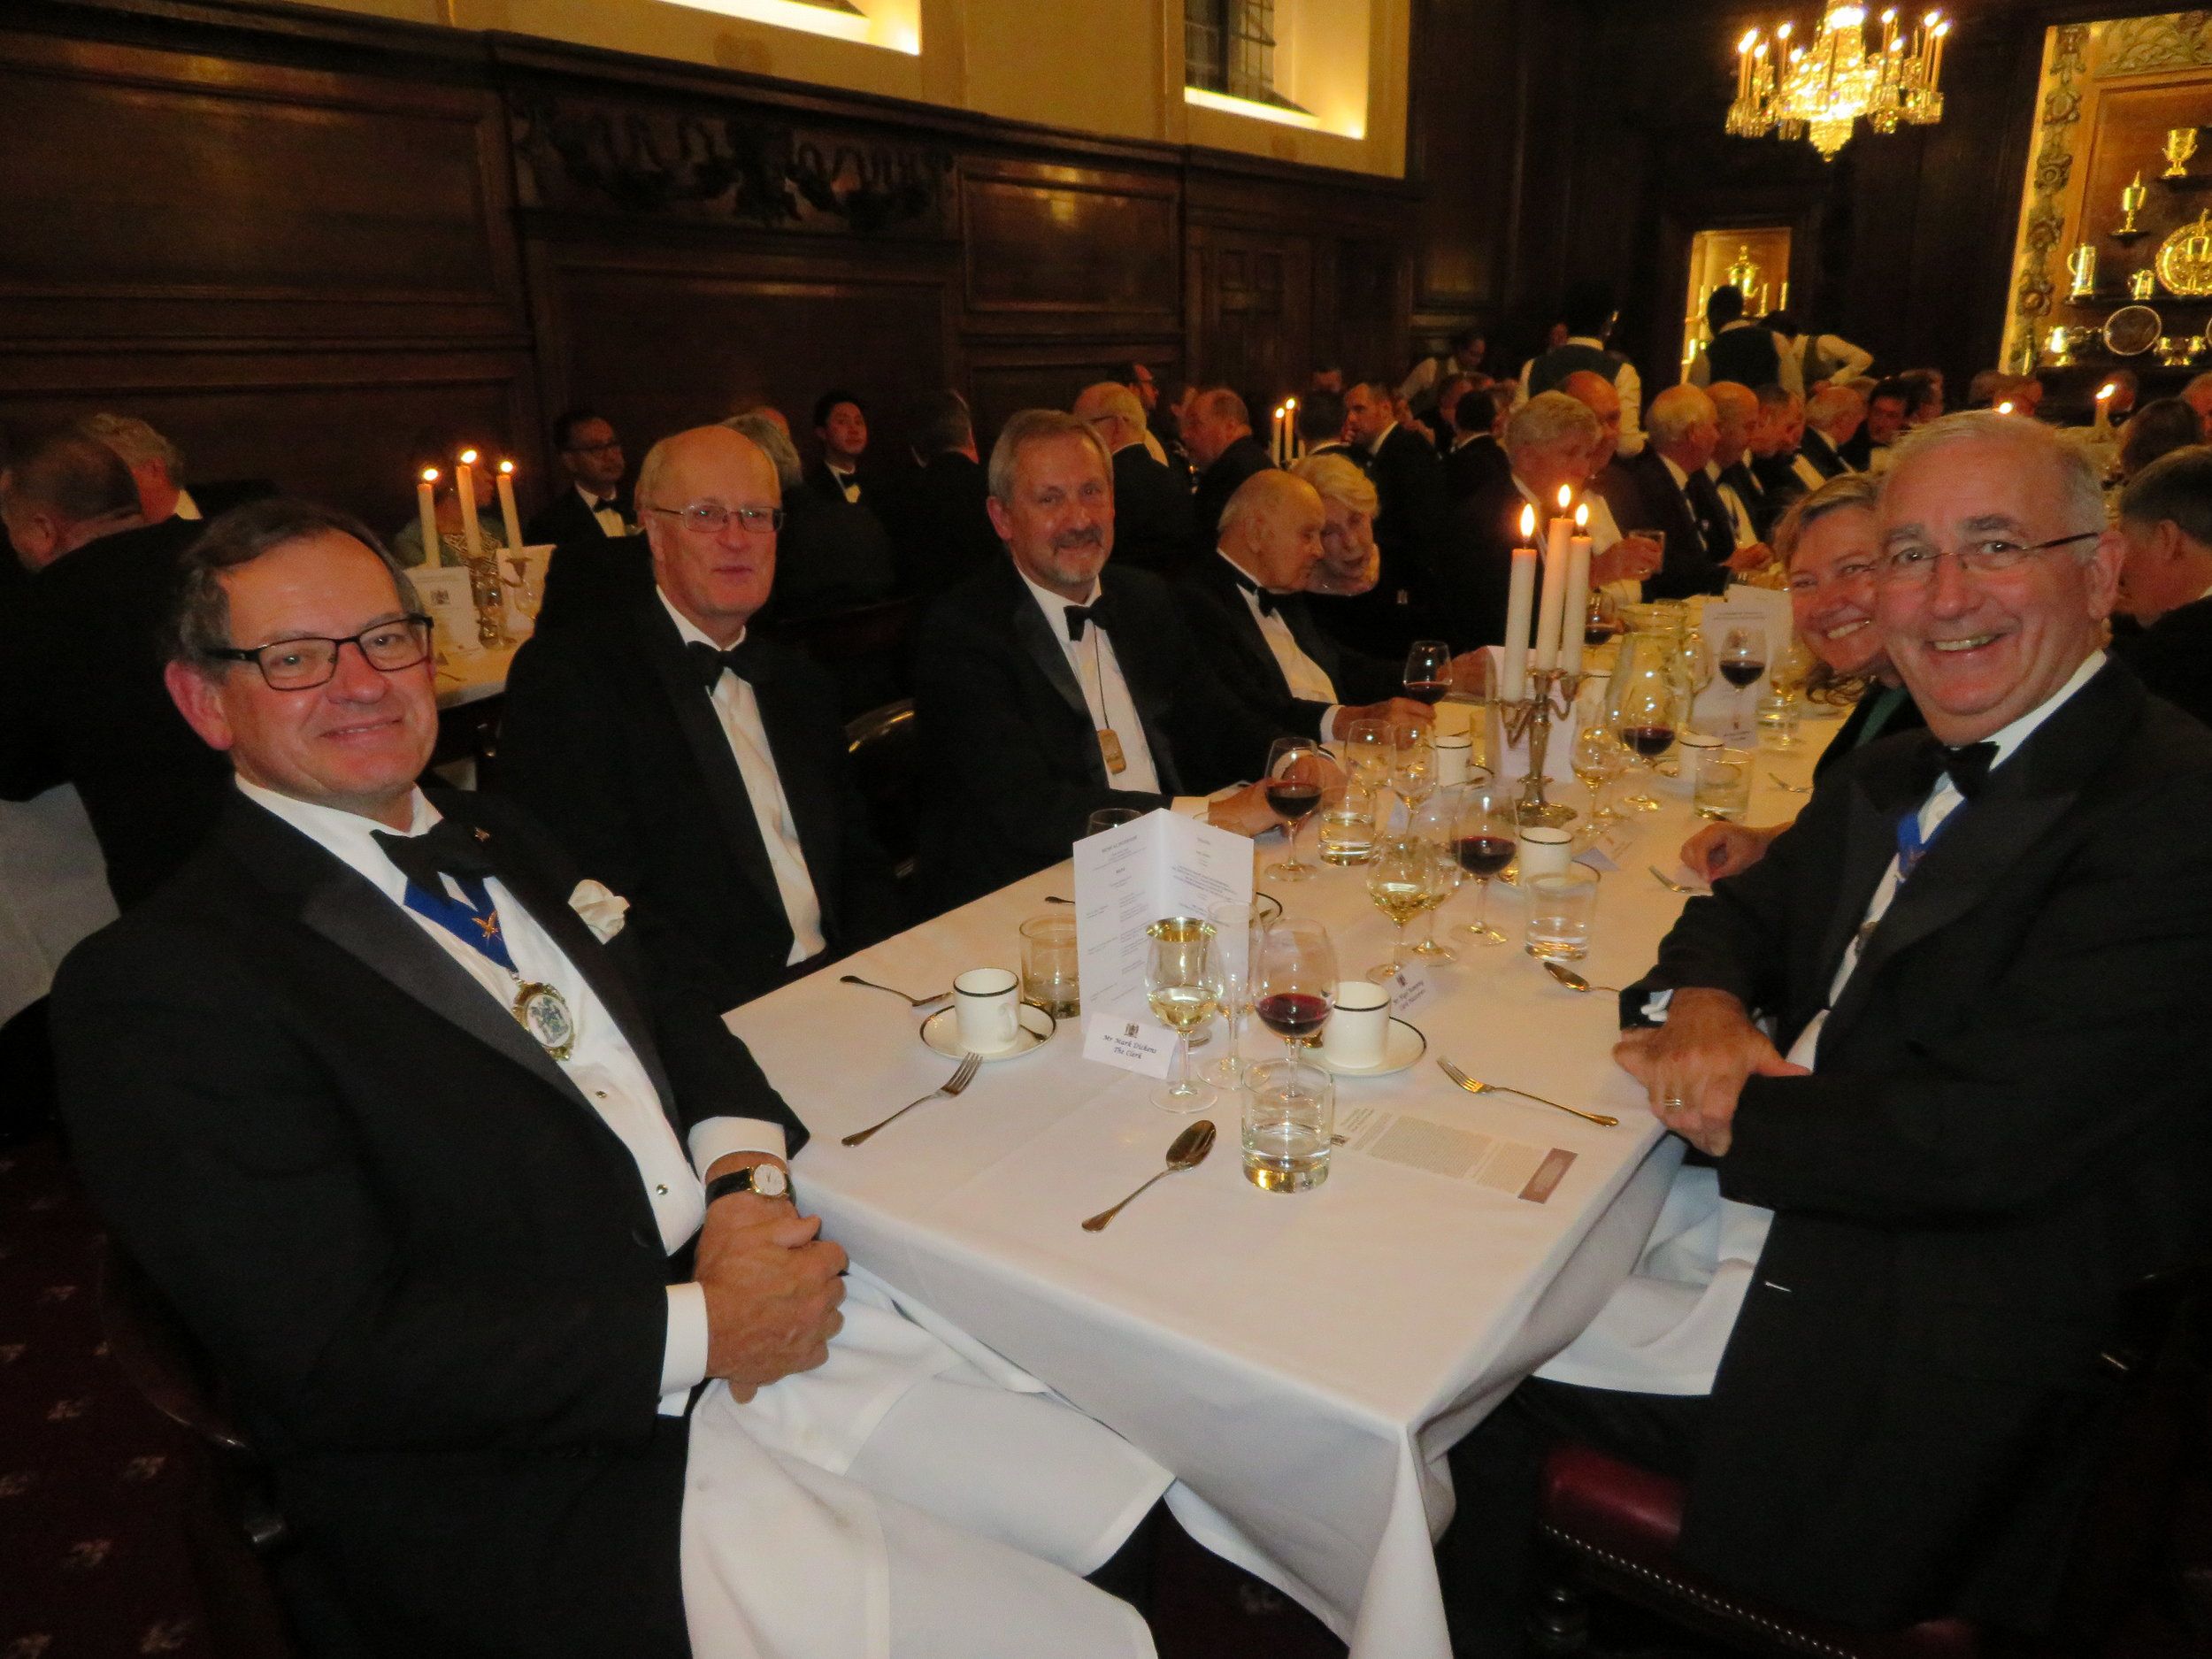 Liveryman Mark Russell, Brig Jonathan Bourne-May - Clerk Vintners, Mr Mark Dickens - Clerk GSWD,  Mr Nigel Bamping - Clerk Plaisterers & Mrs Belinda Tregear - Clerk Hackney Carriage Drivers